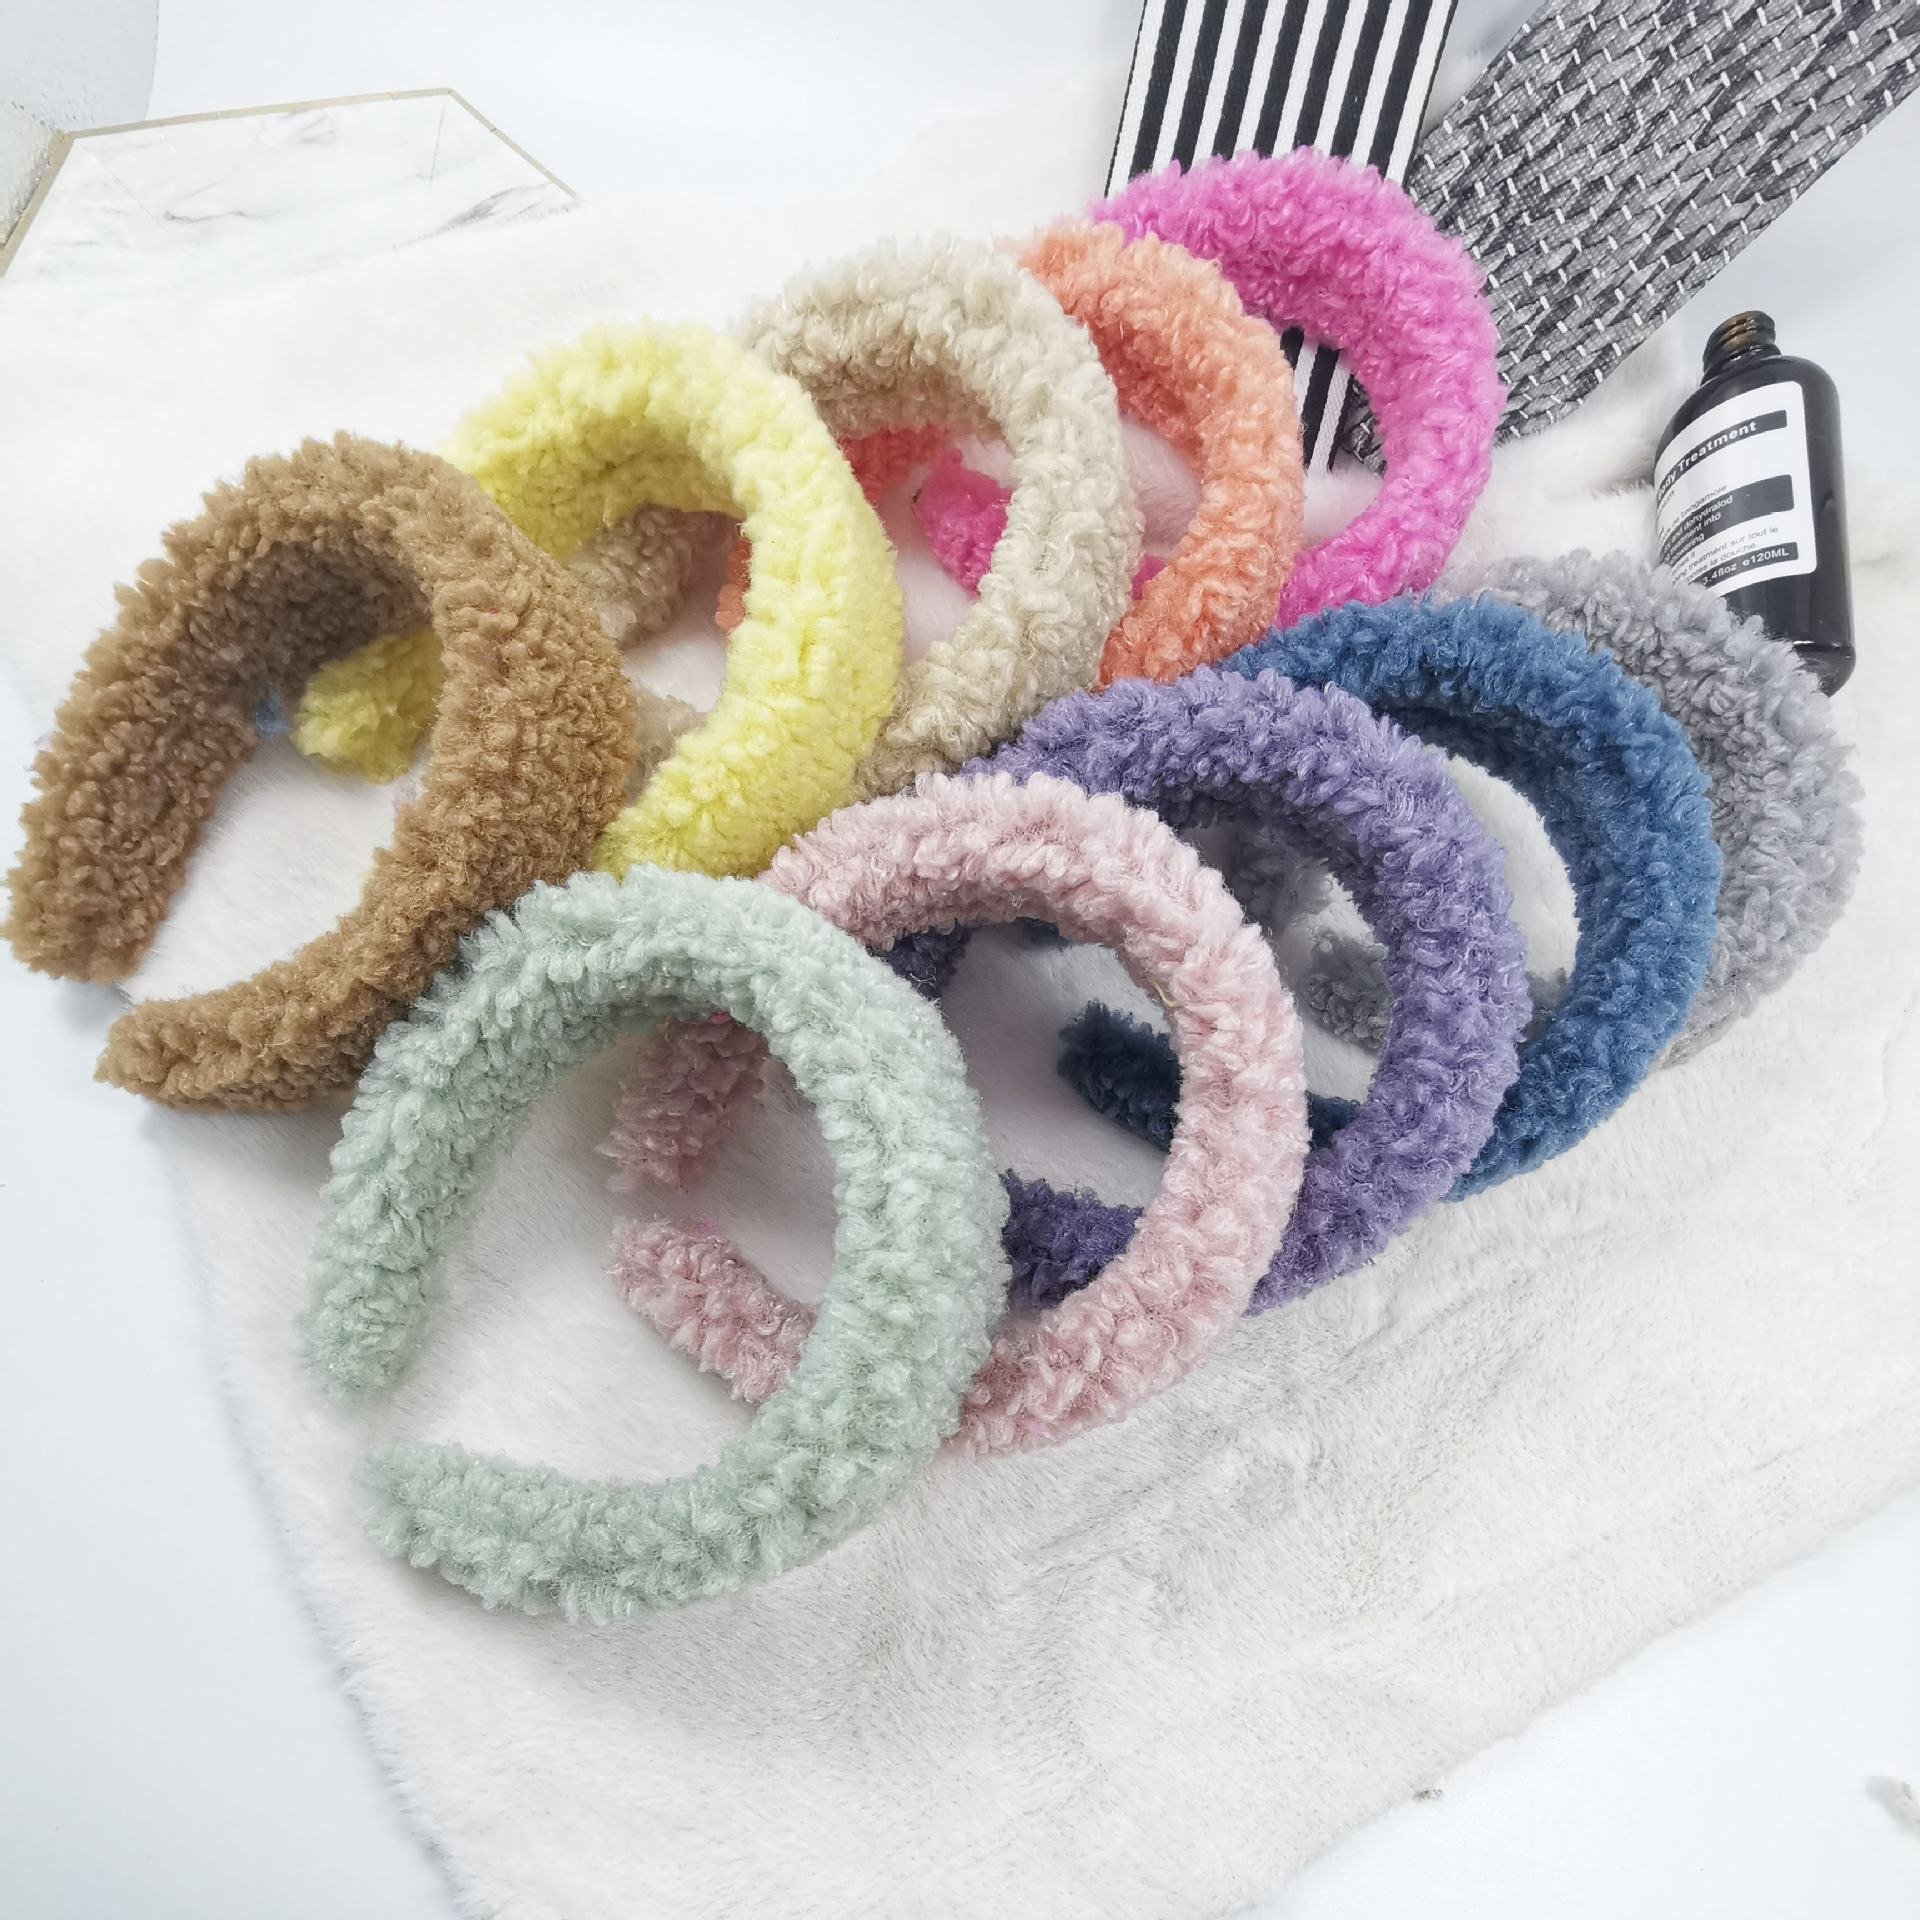 2020 new wide edge thick hair band autumn winter teddy curly plush women <strong>headband</strong>